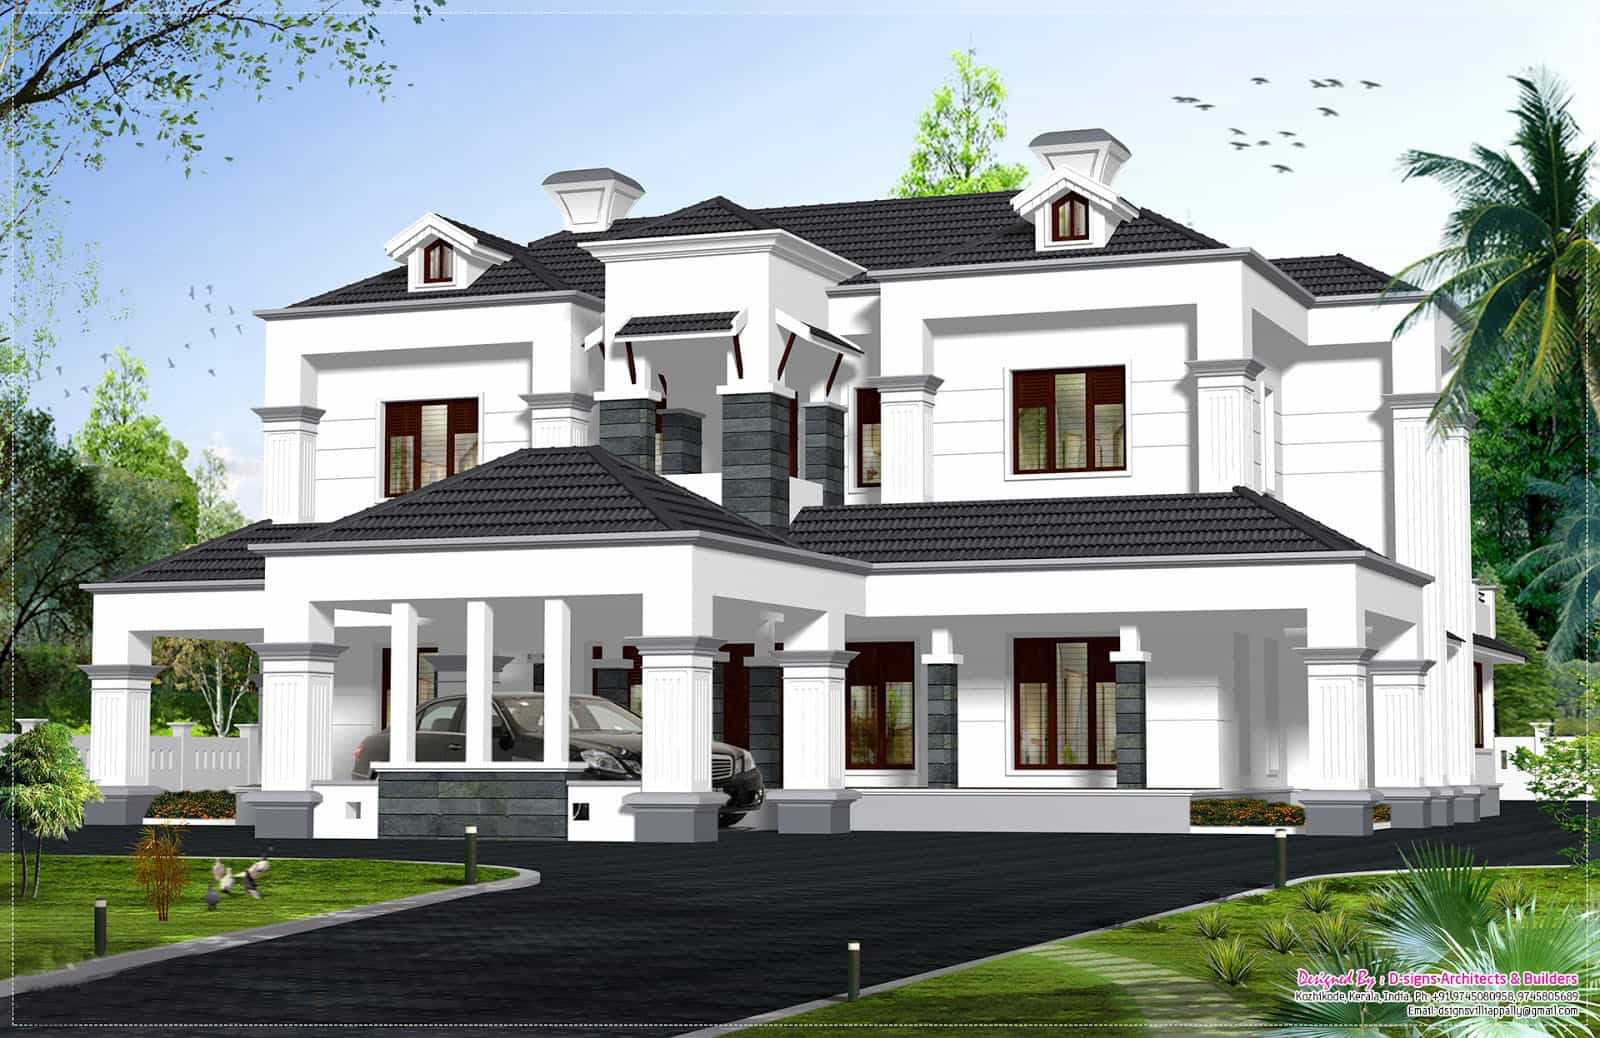 Low cost house in kerala with plan photos 991 sq ft khp for Houses models